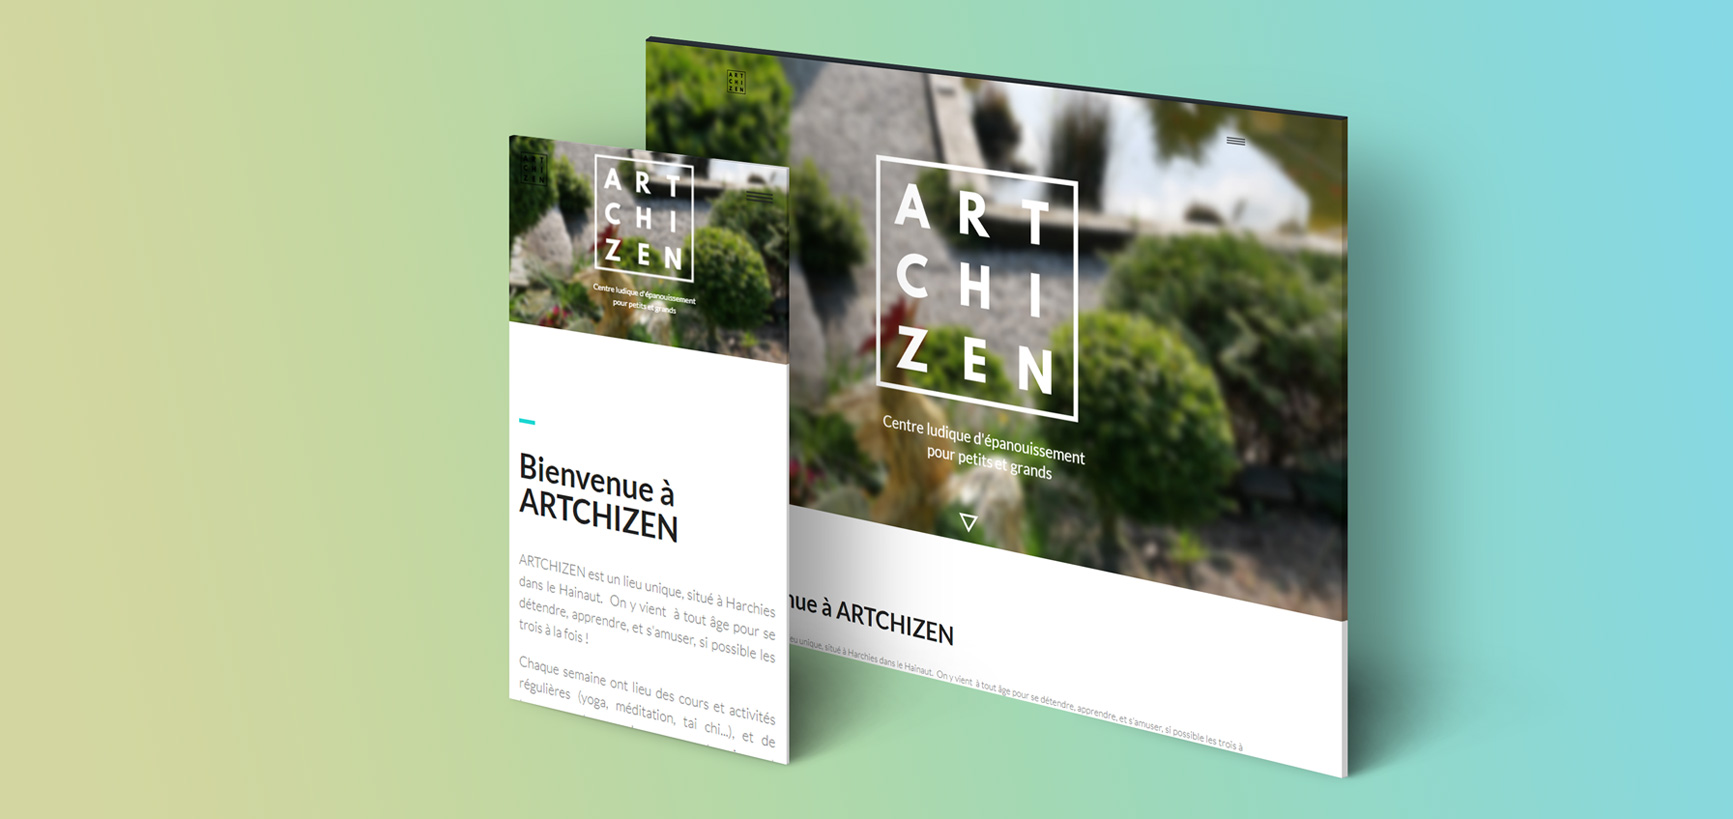 webdesign artchizen